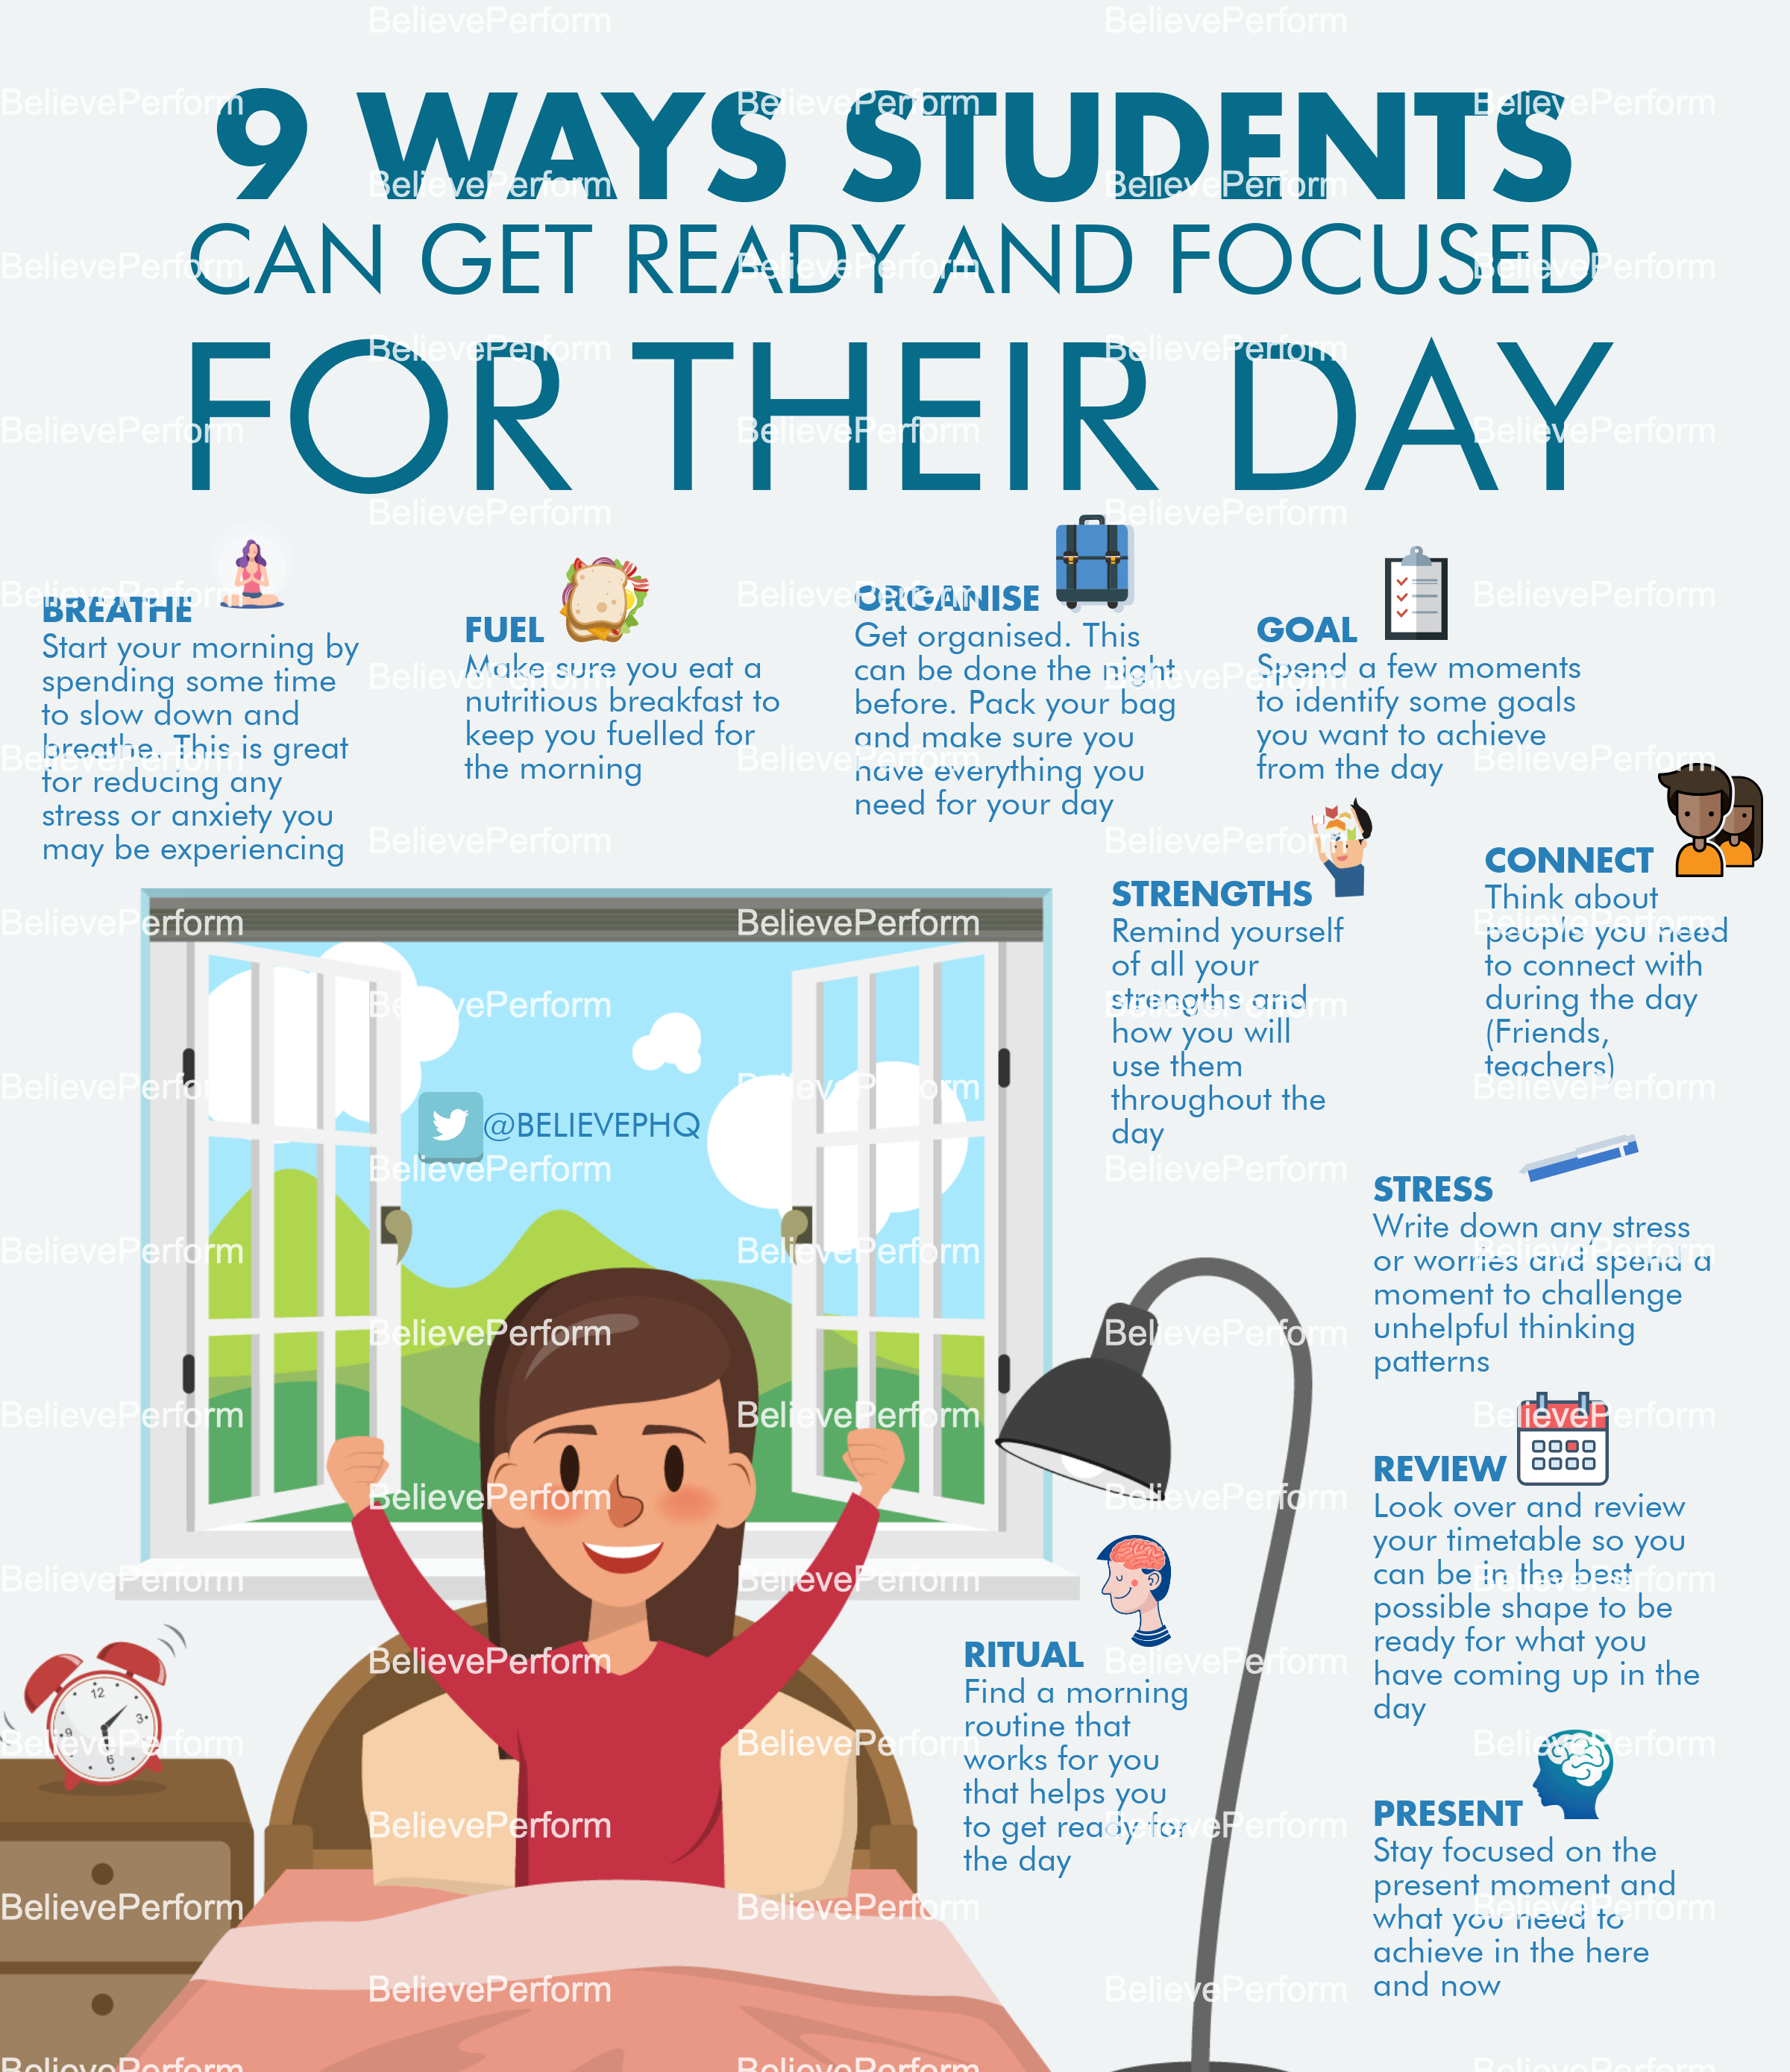 9 ways students can get ready and focused for their day